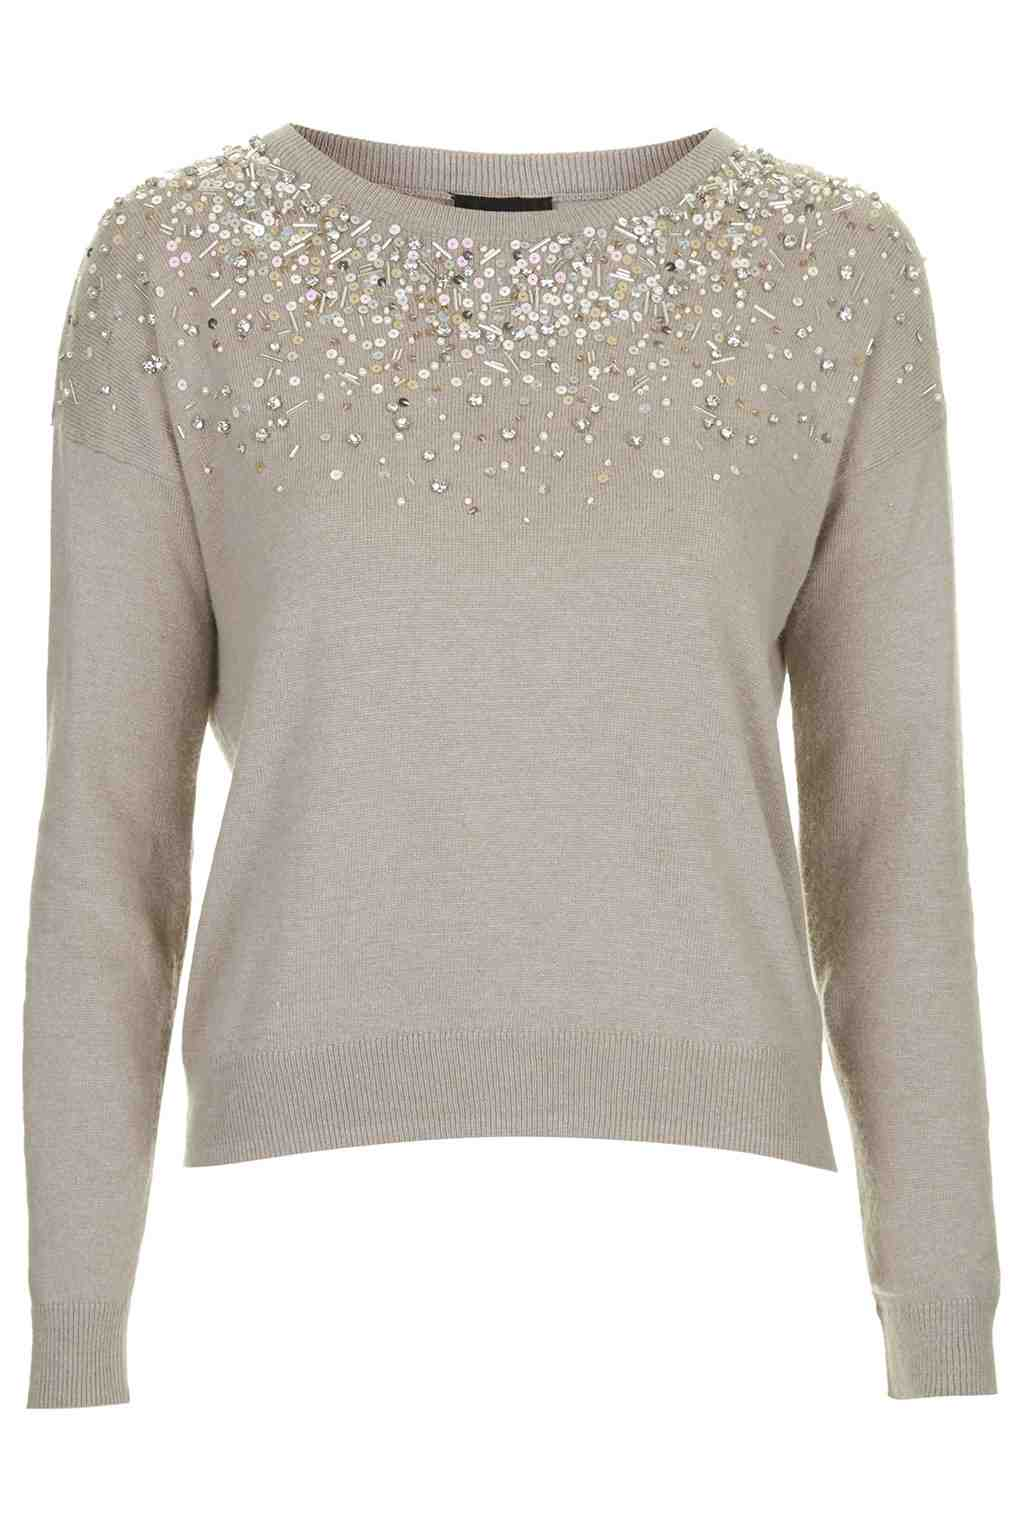 Topshop - Pull(60 €)